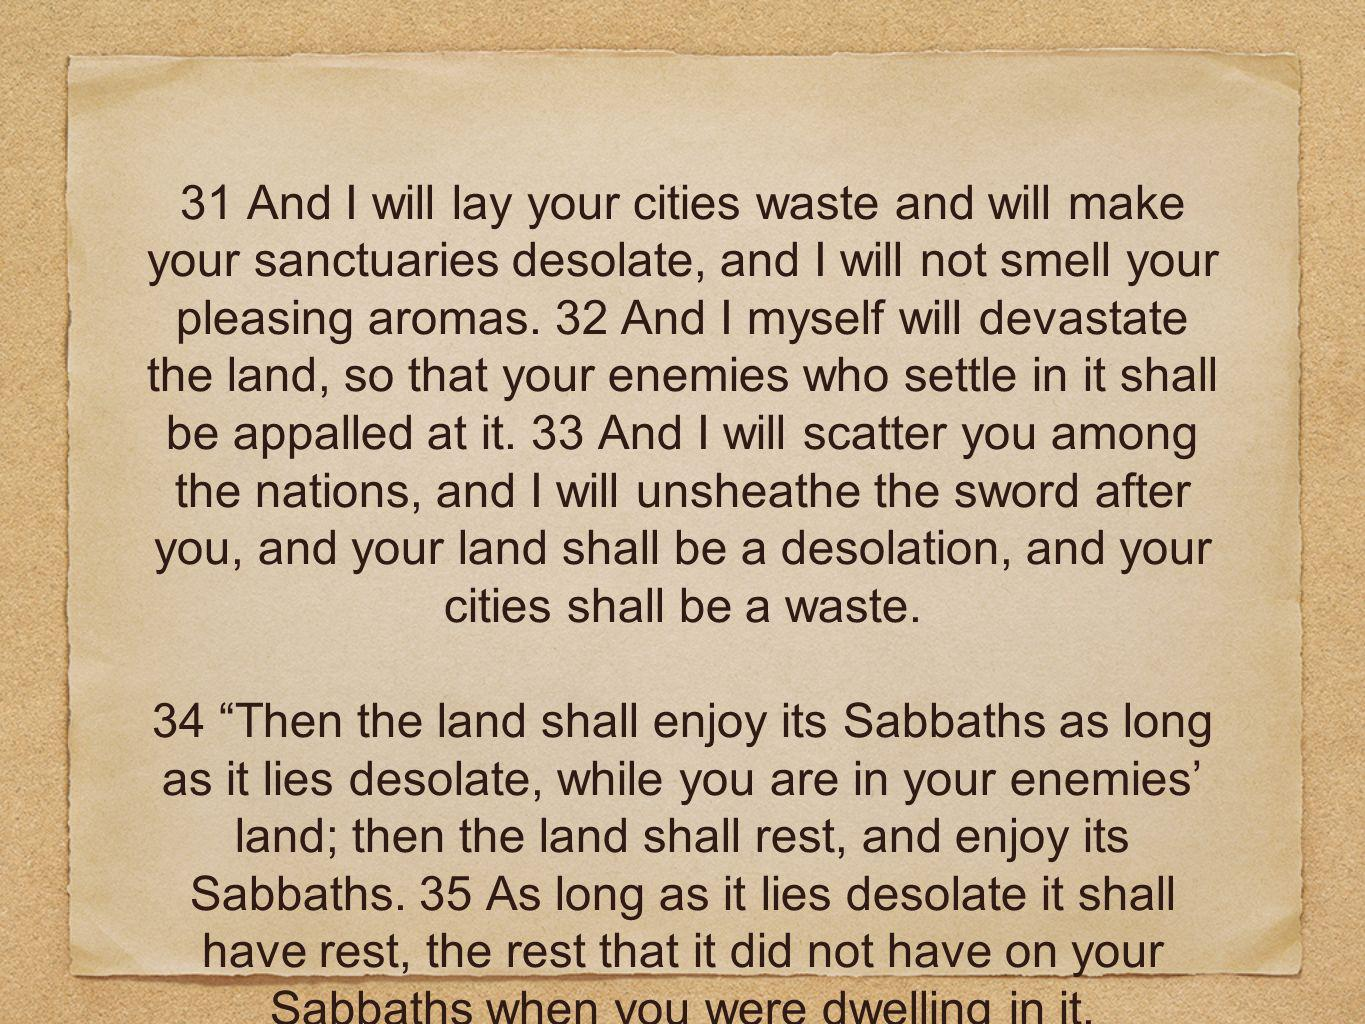 31 And I will lay your cities waste and will make your sanctuaries desolate, and I will not smell your pleasing aromas. 32 And I myself will devastate the land, so that your enemies who settle in it shall be appalled at it. 33 And I will scatter you among the nations, and I will unsheathe the sword after you, and your land shall be a desolation, and your cities shall be a waste.